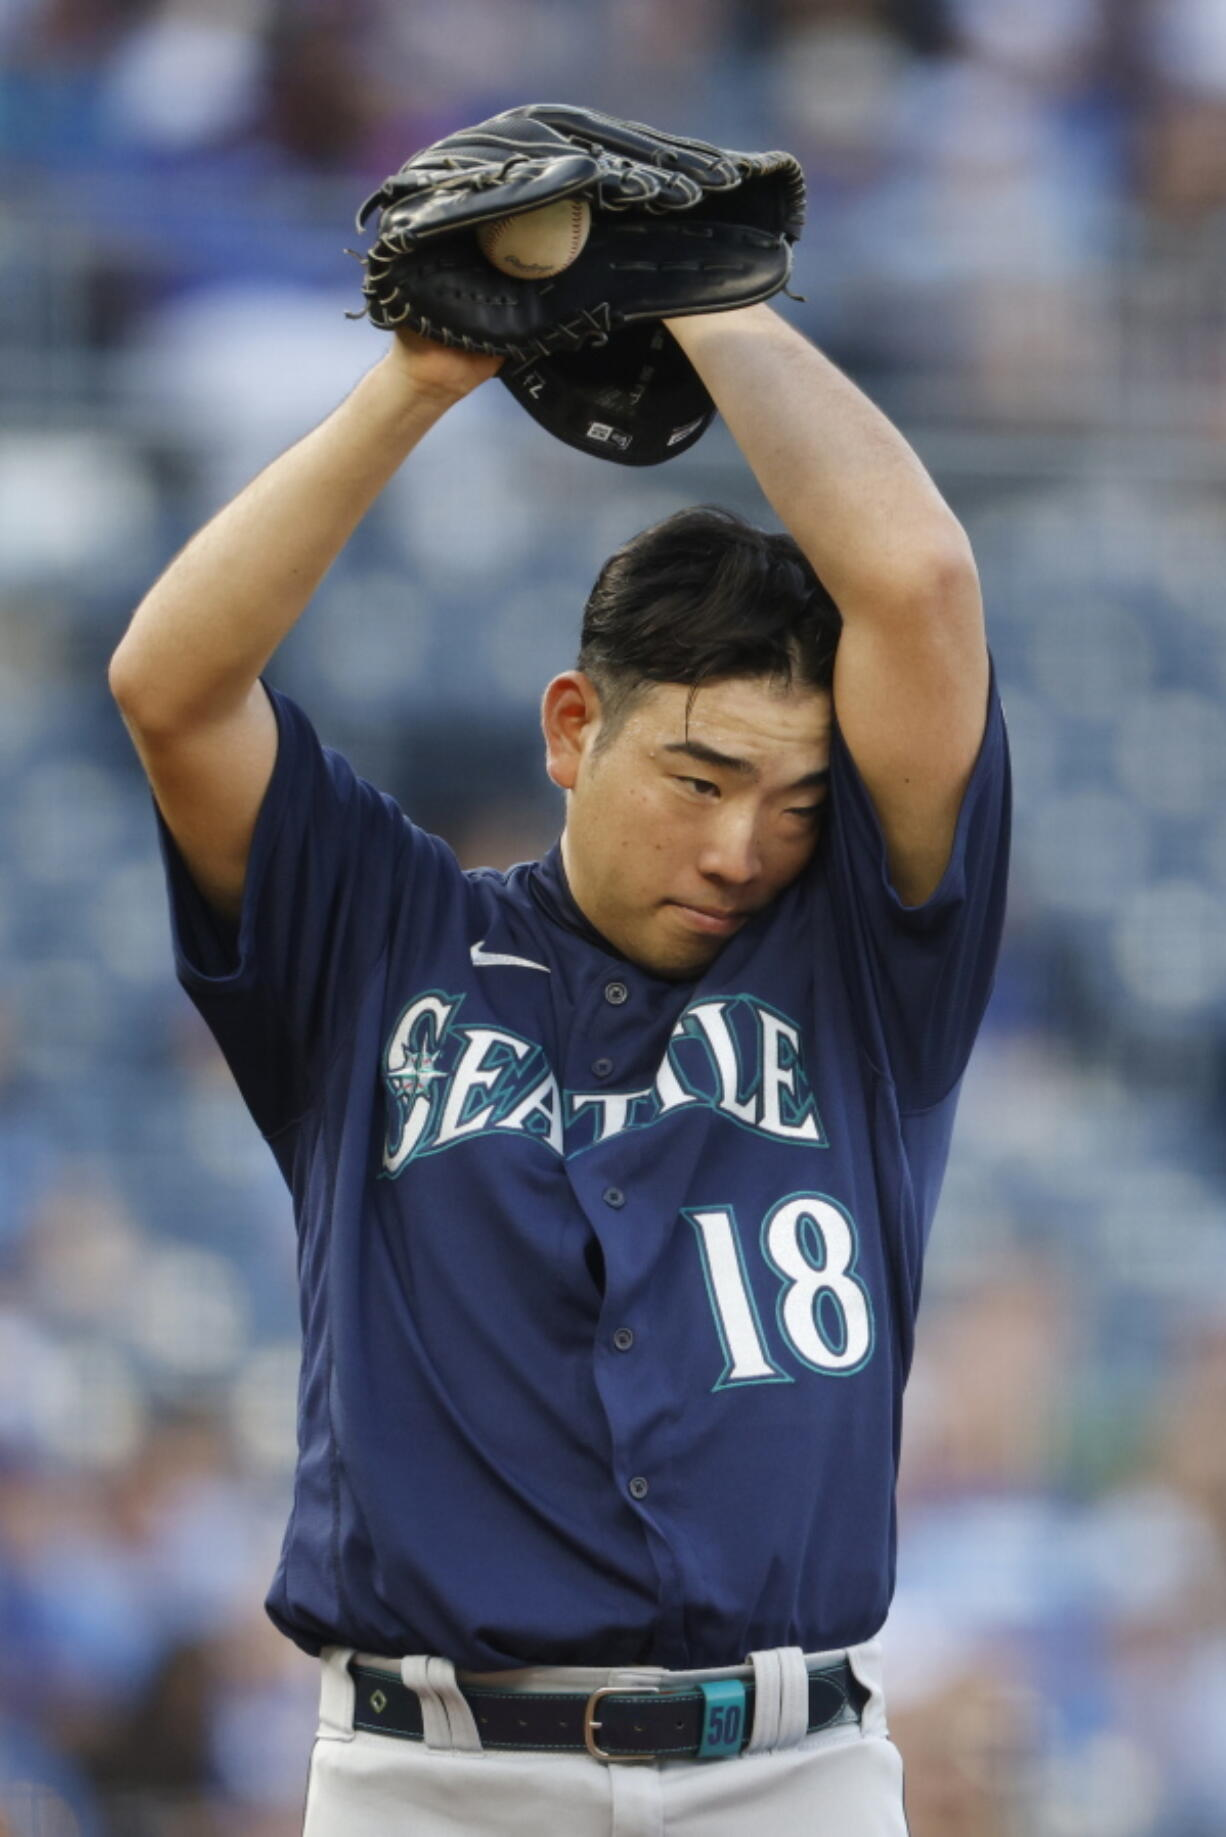 Seattle Mariners pitcher Yusei Kikuchi wipes sweat from his brow during the first inning of a baseball game against the Kansas City Royals at Kauffman Stadium in Kansas City, Mo., Saturday, Sept. 18, 2021. (AP Photo/Colin E.